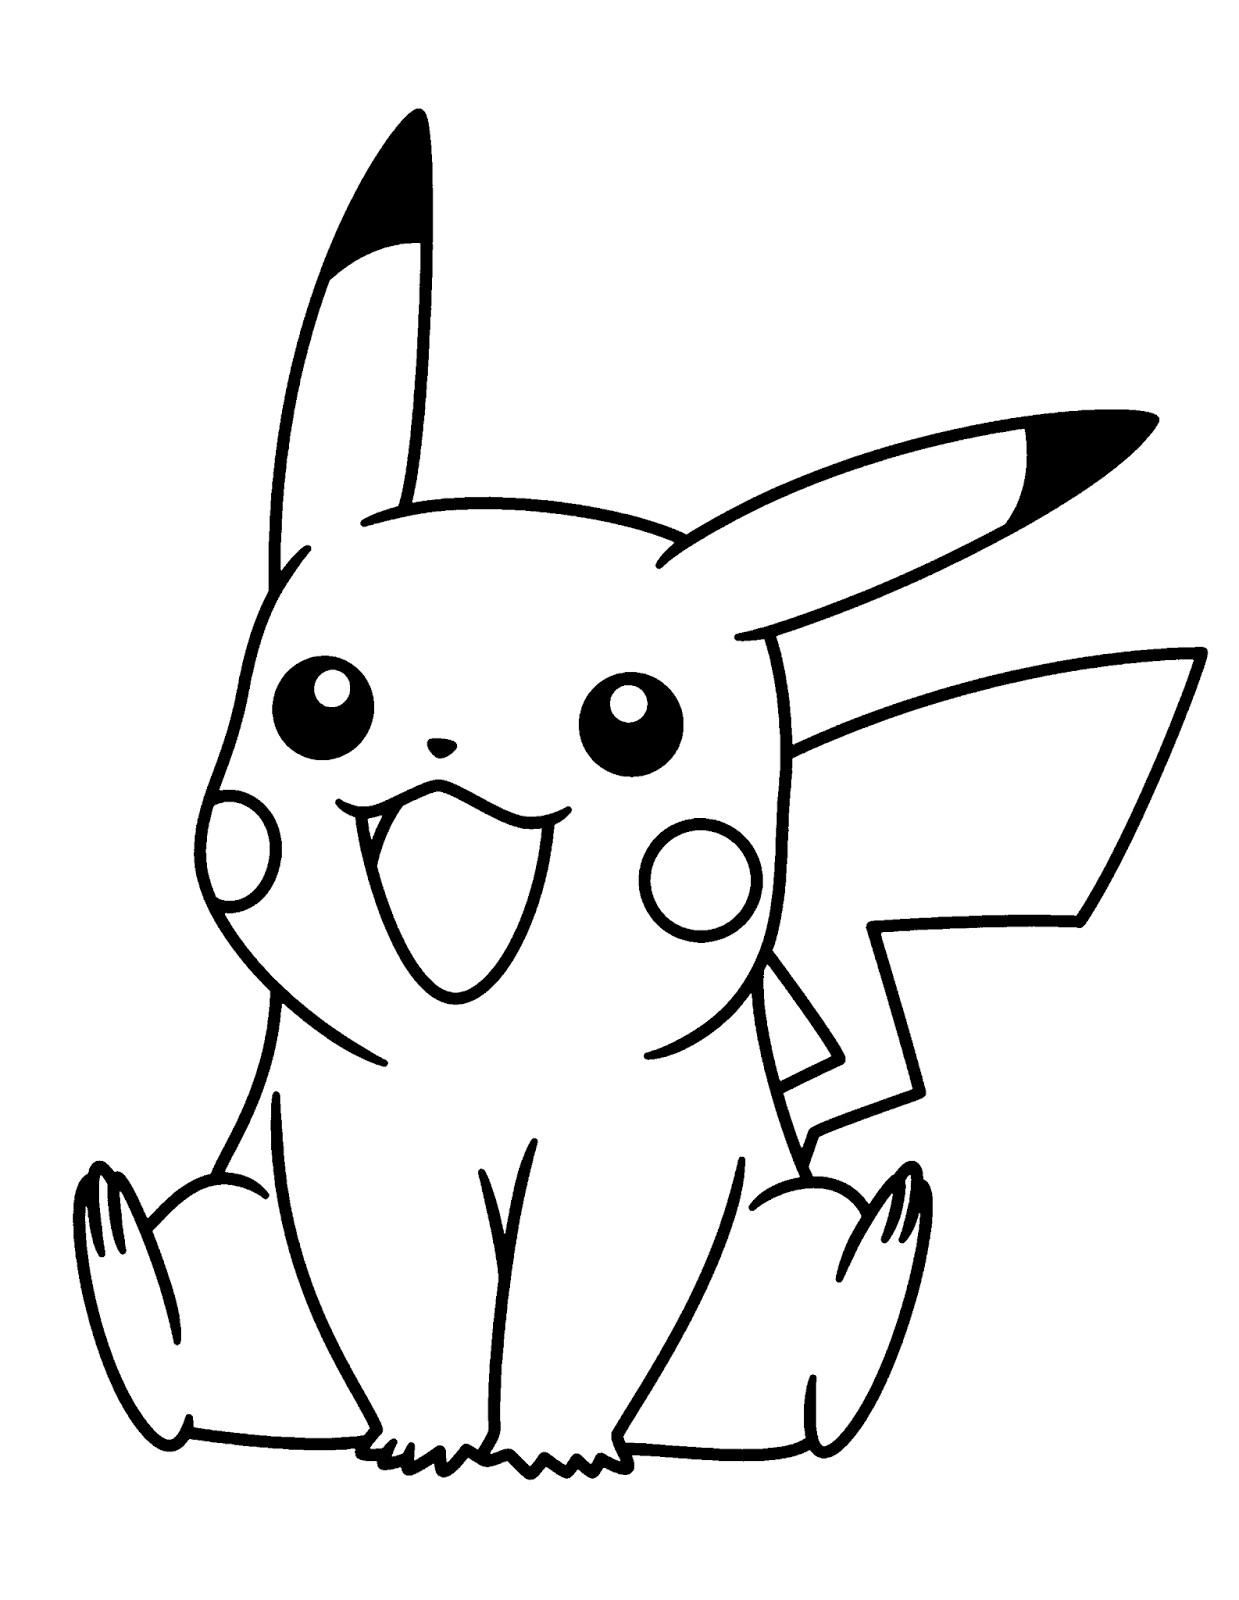 Pokemon Printable Coloring Pages  Coloring Pages Pokemon Coloring Pages Free and Printable